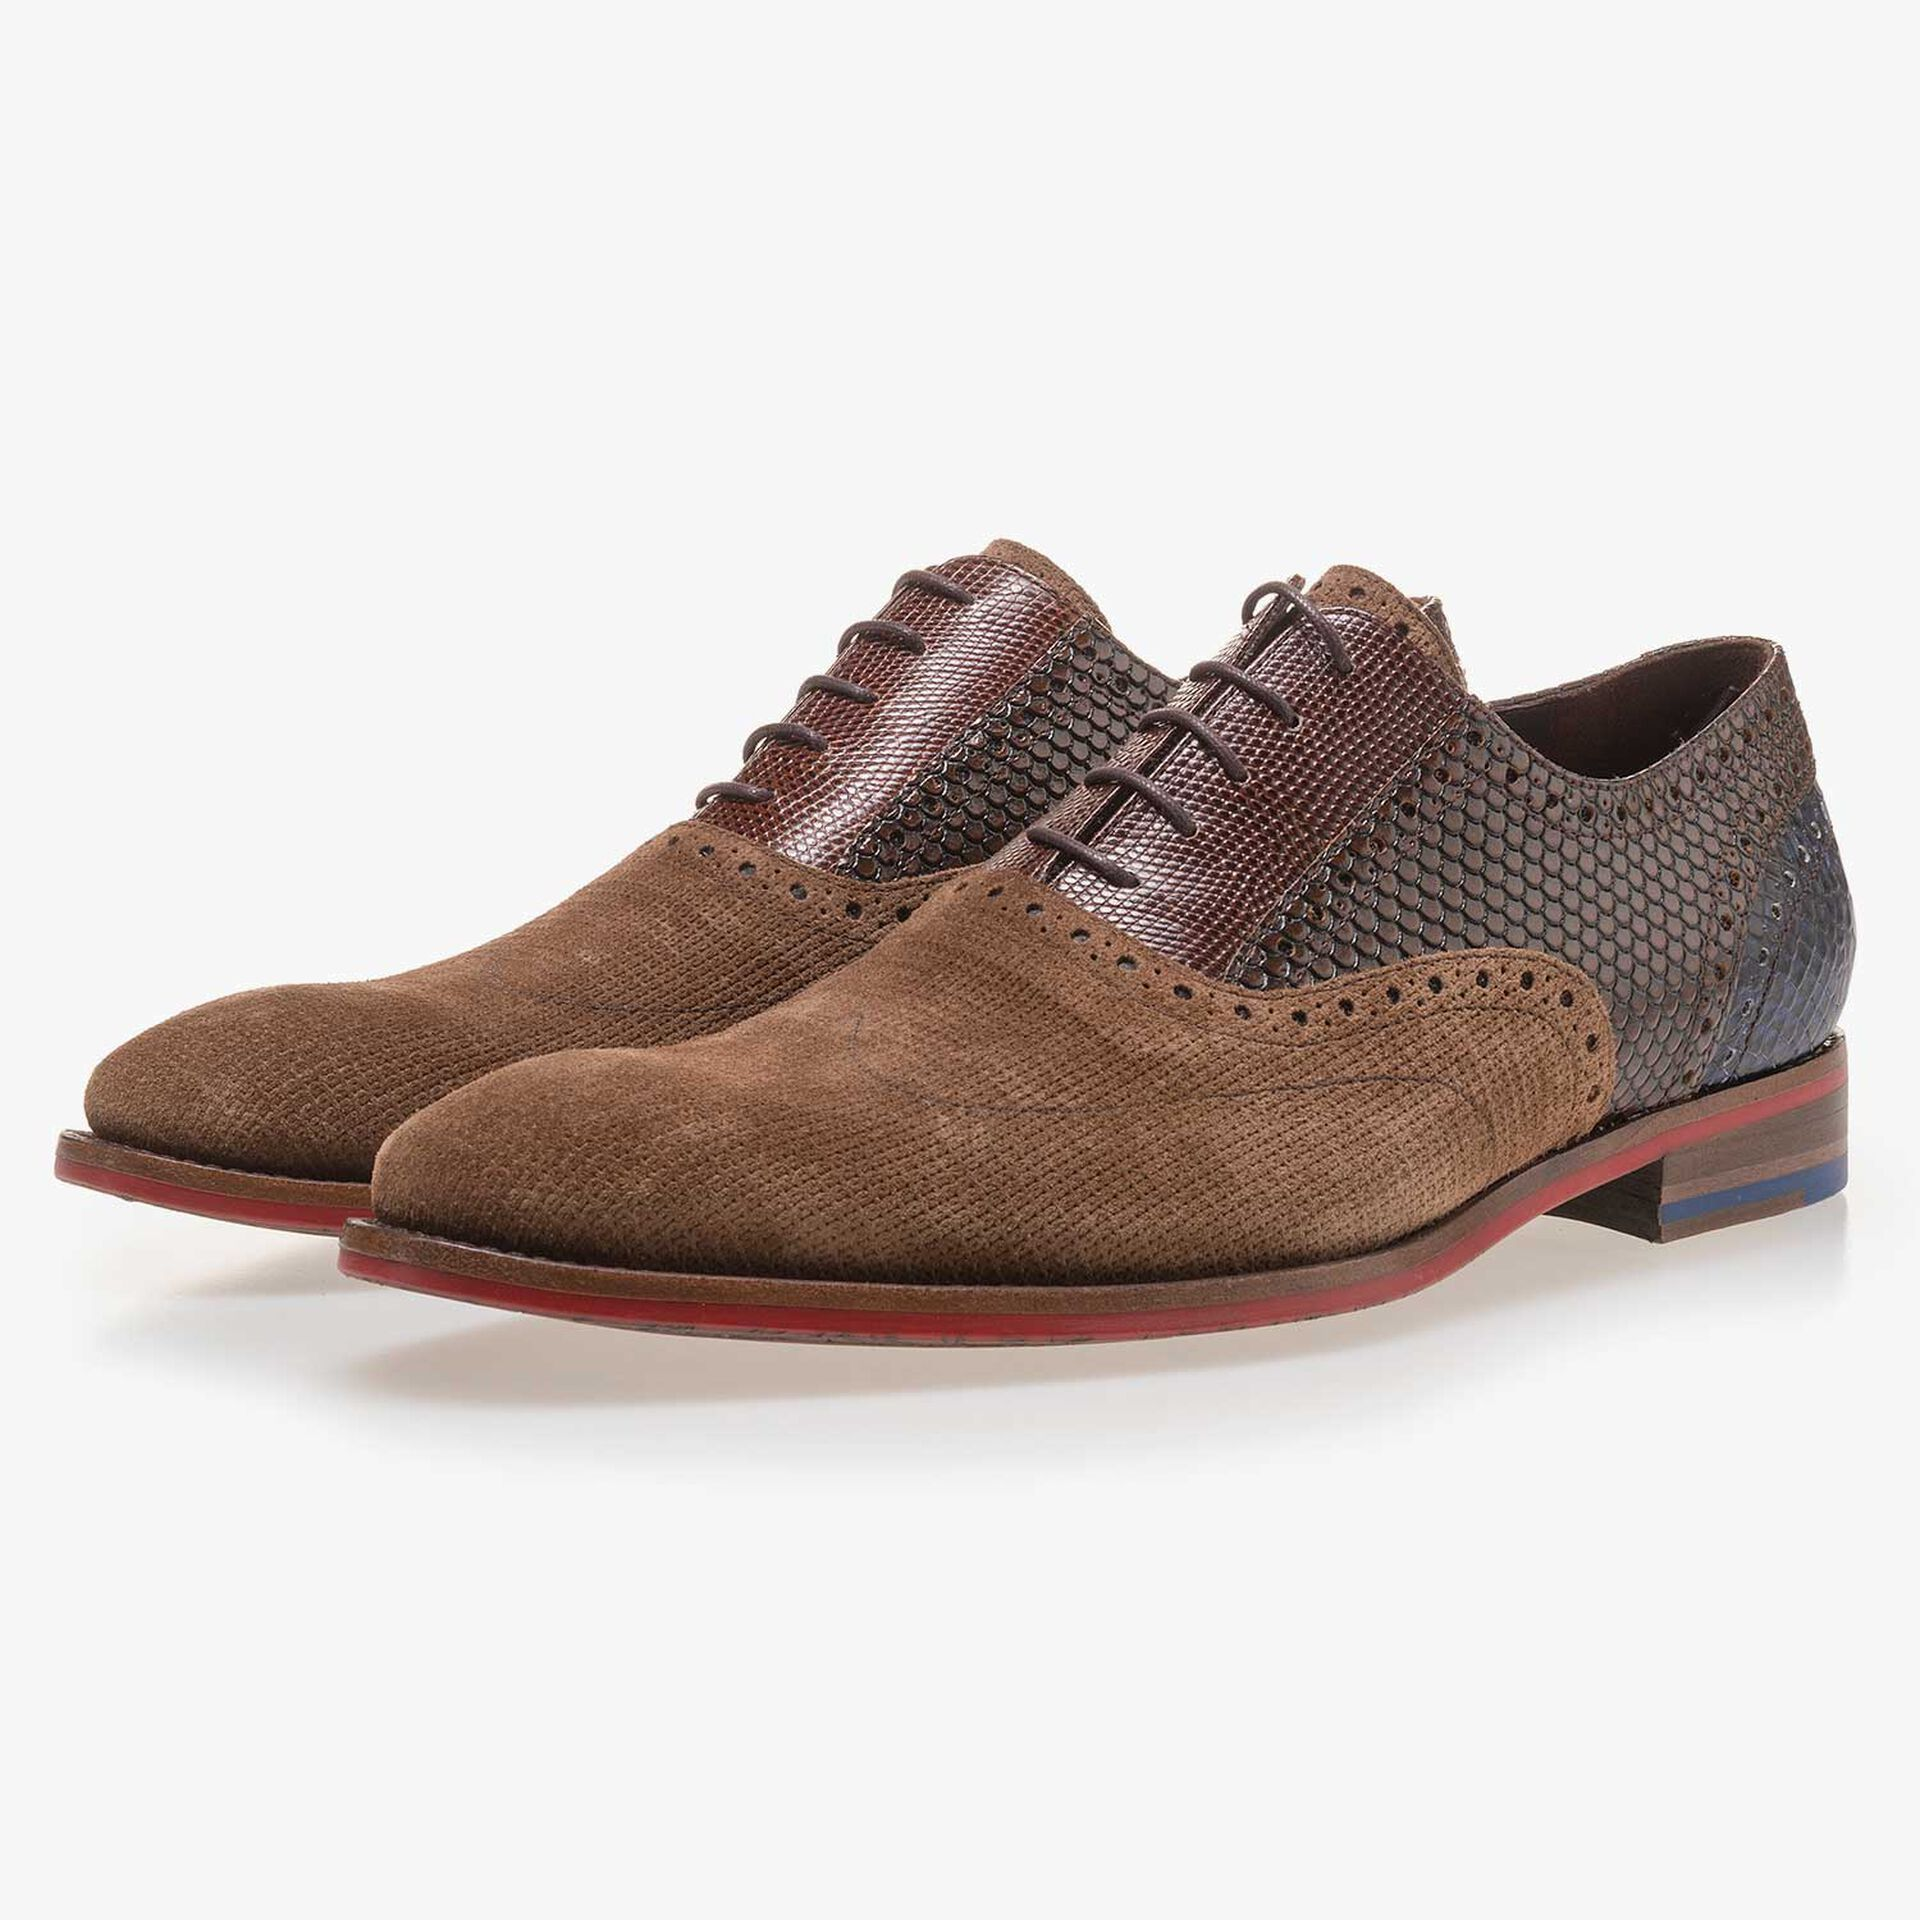 Light brown patterned lace shoe made of suede leather